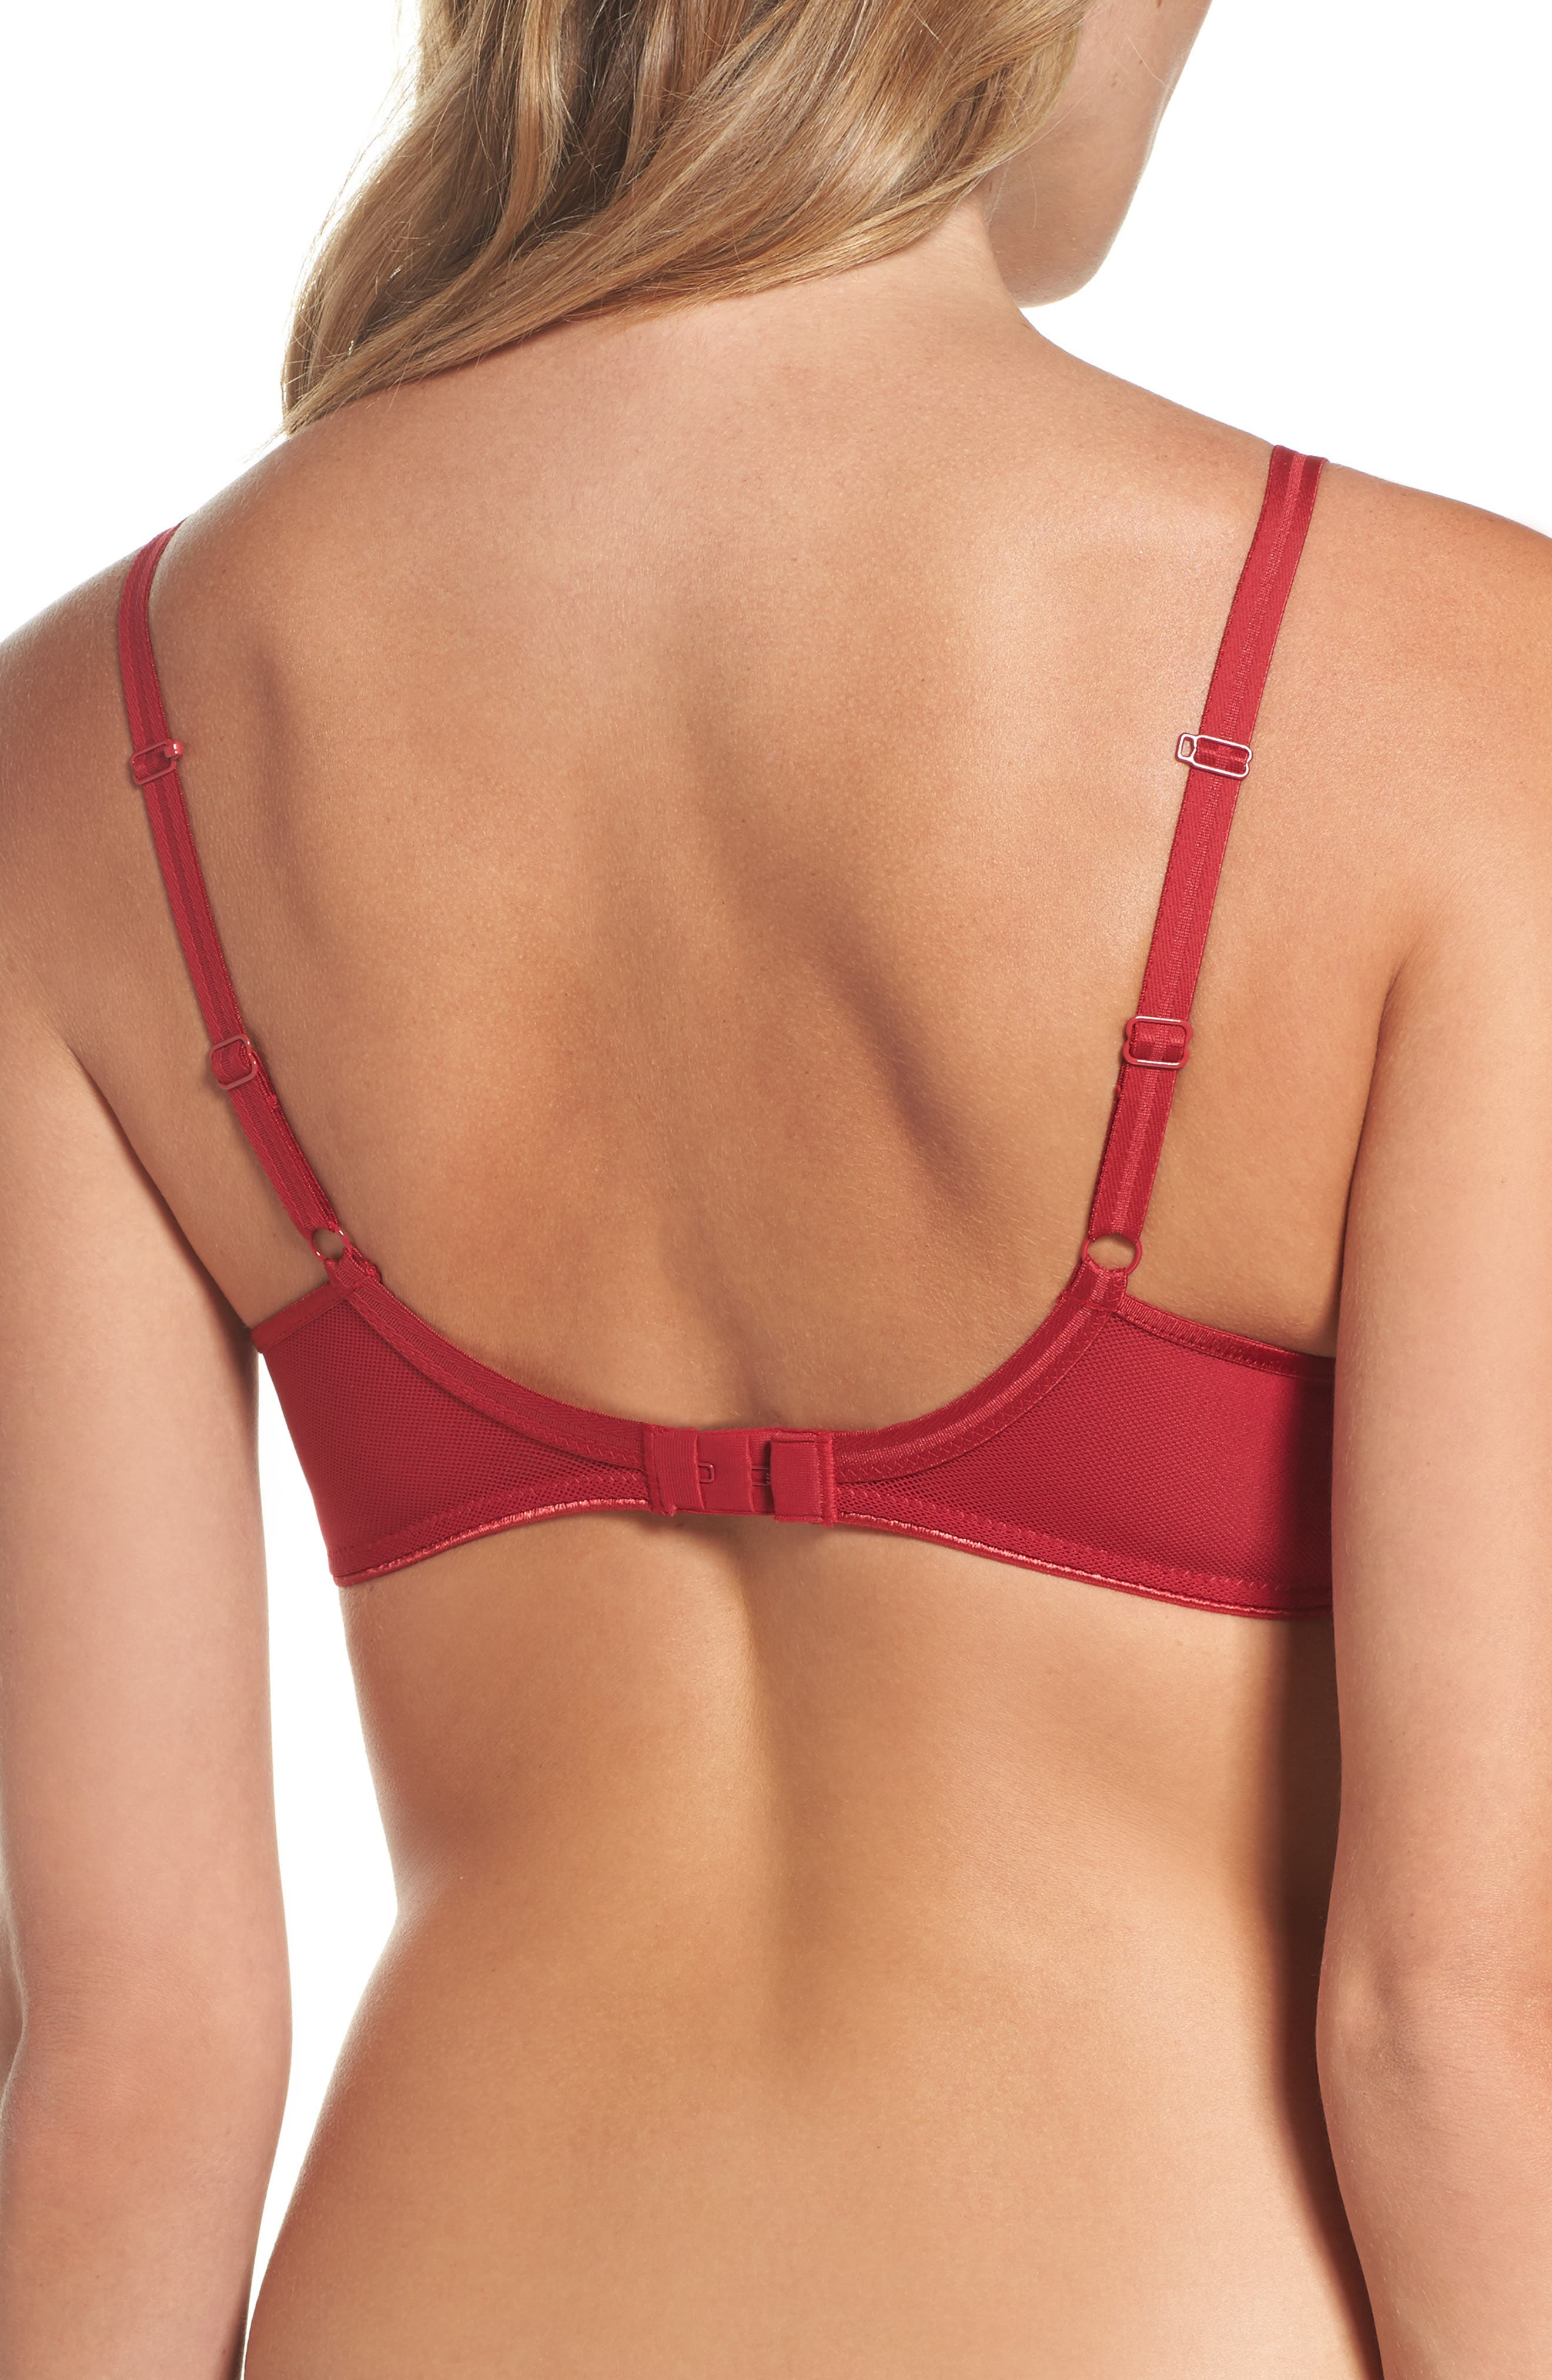 Aeria Underwire Spacer Bra,                             Alternate thumbnail 2, color,                             Candy Apple